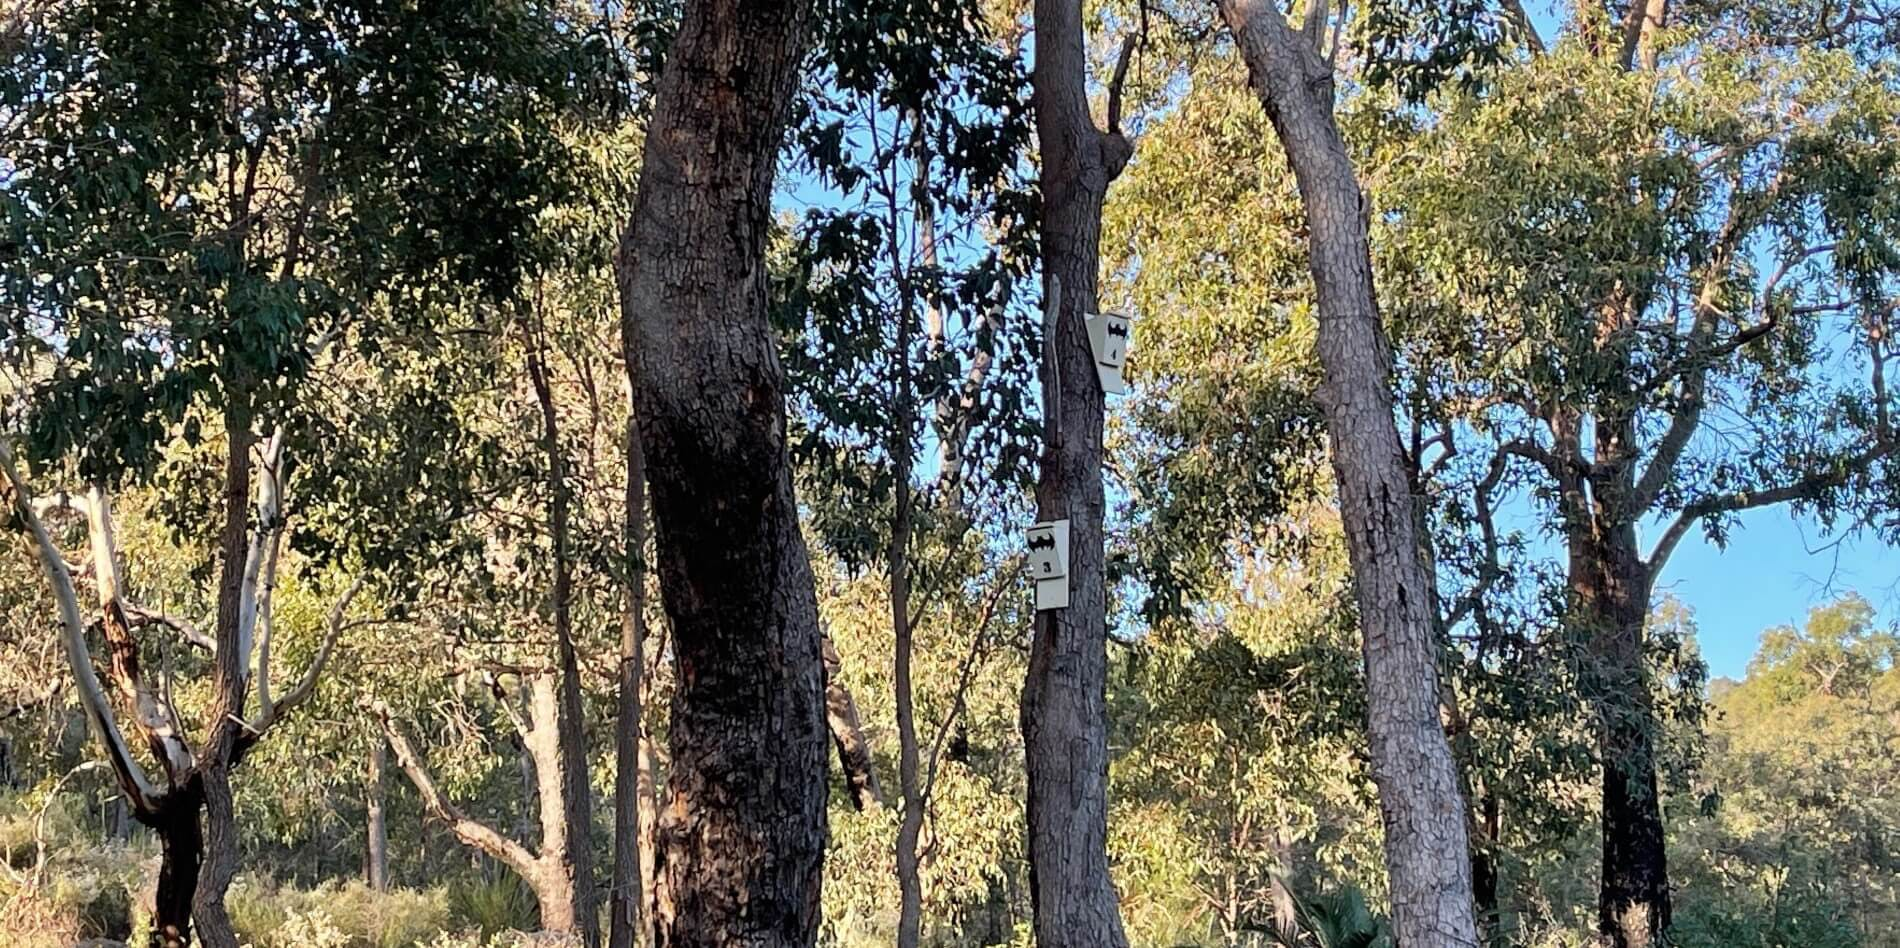 Microbats boxes at Mundy Regional Park located in Lesmurdie